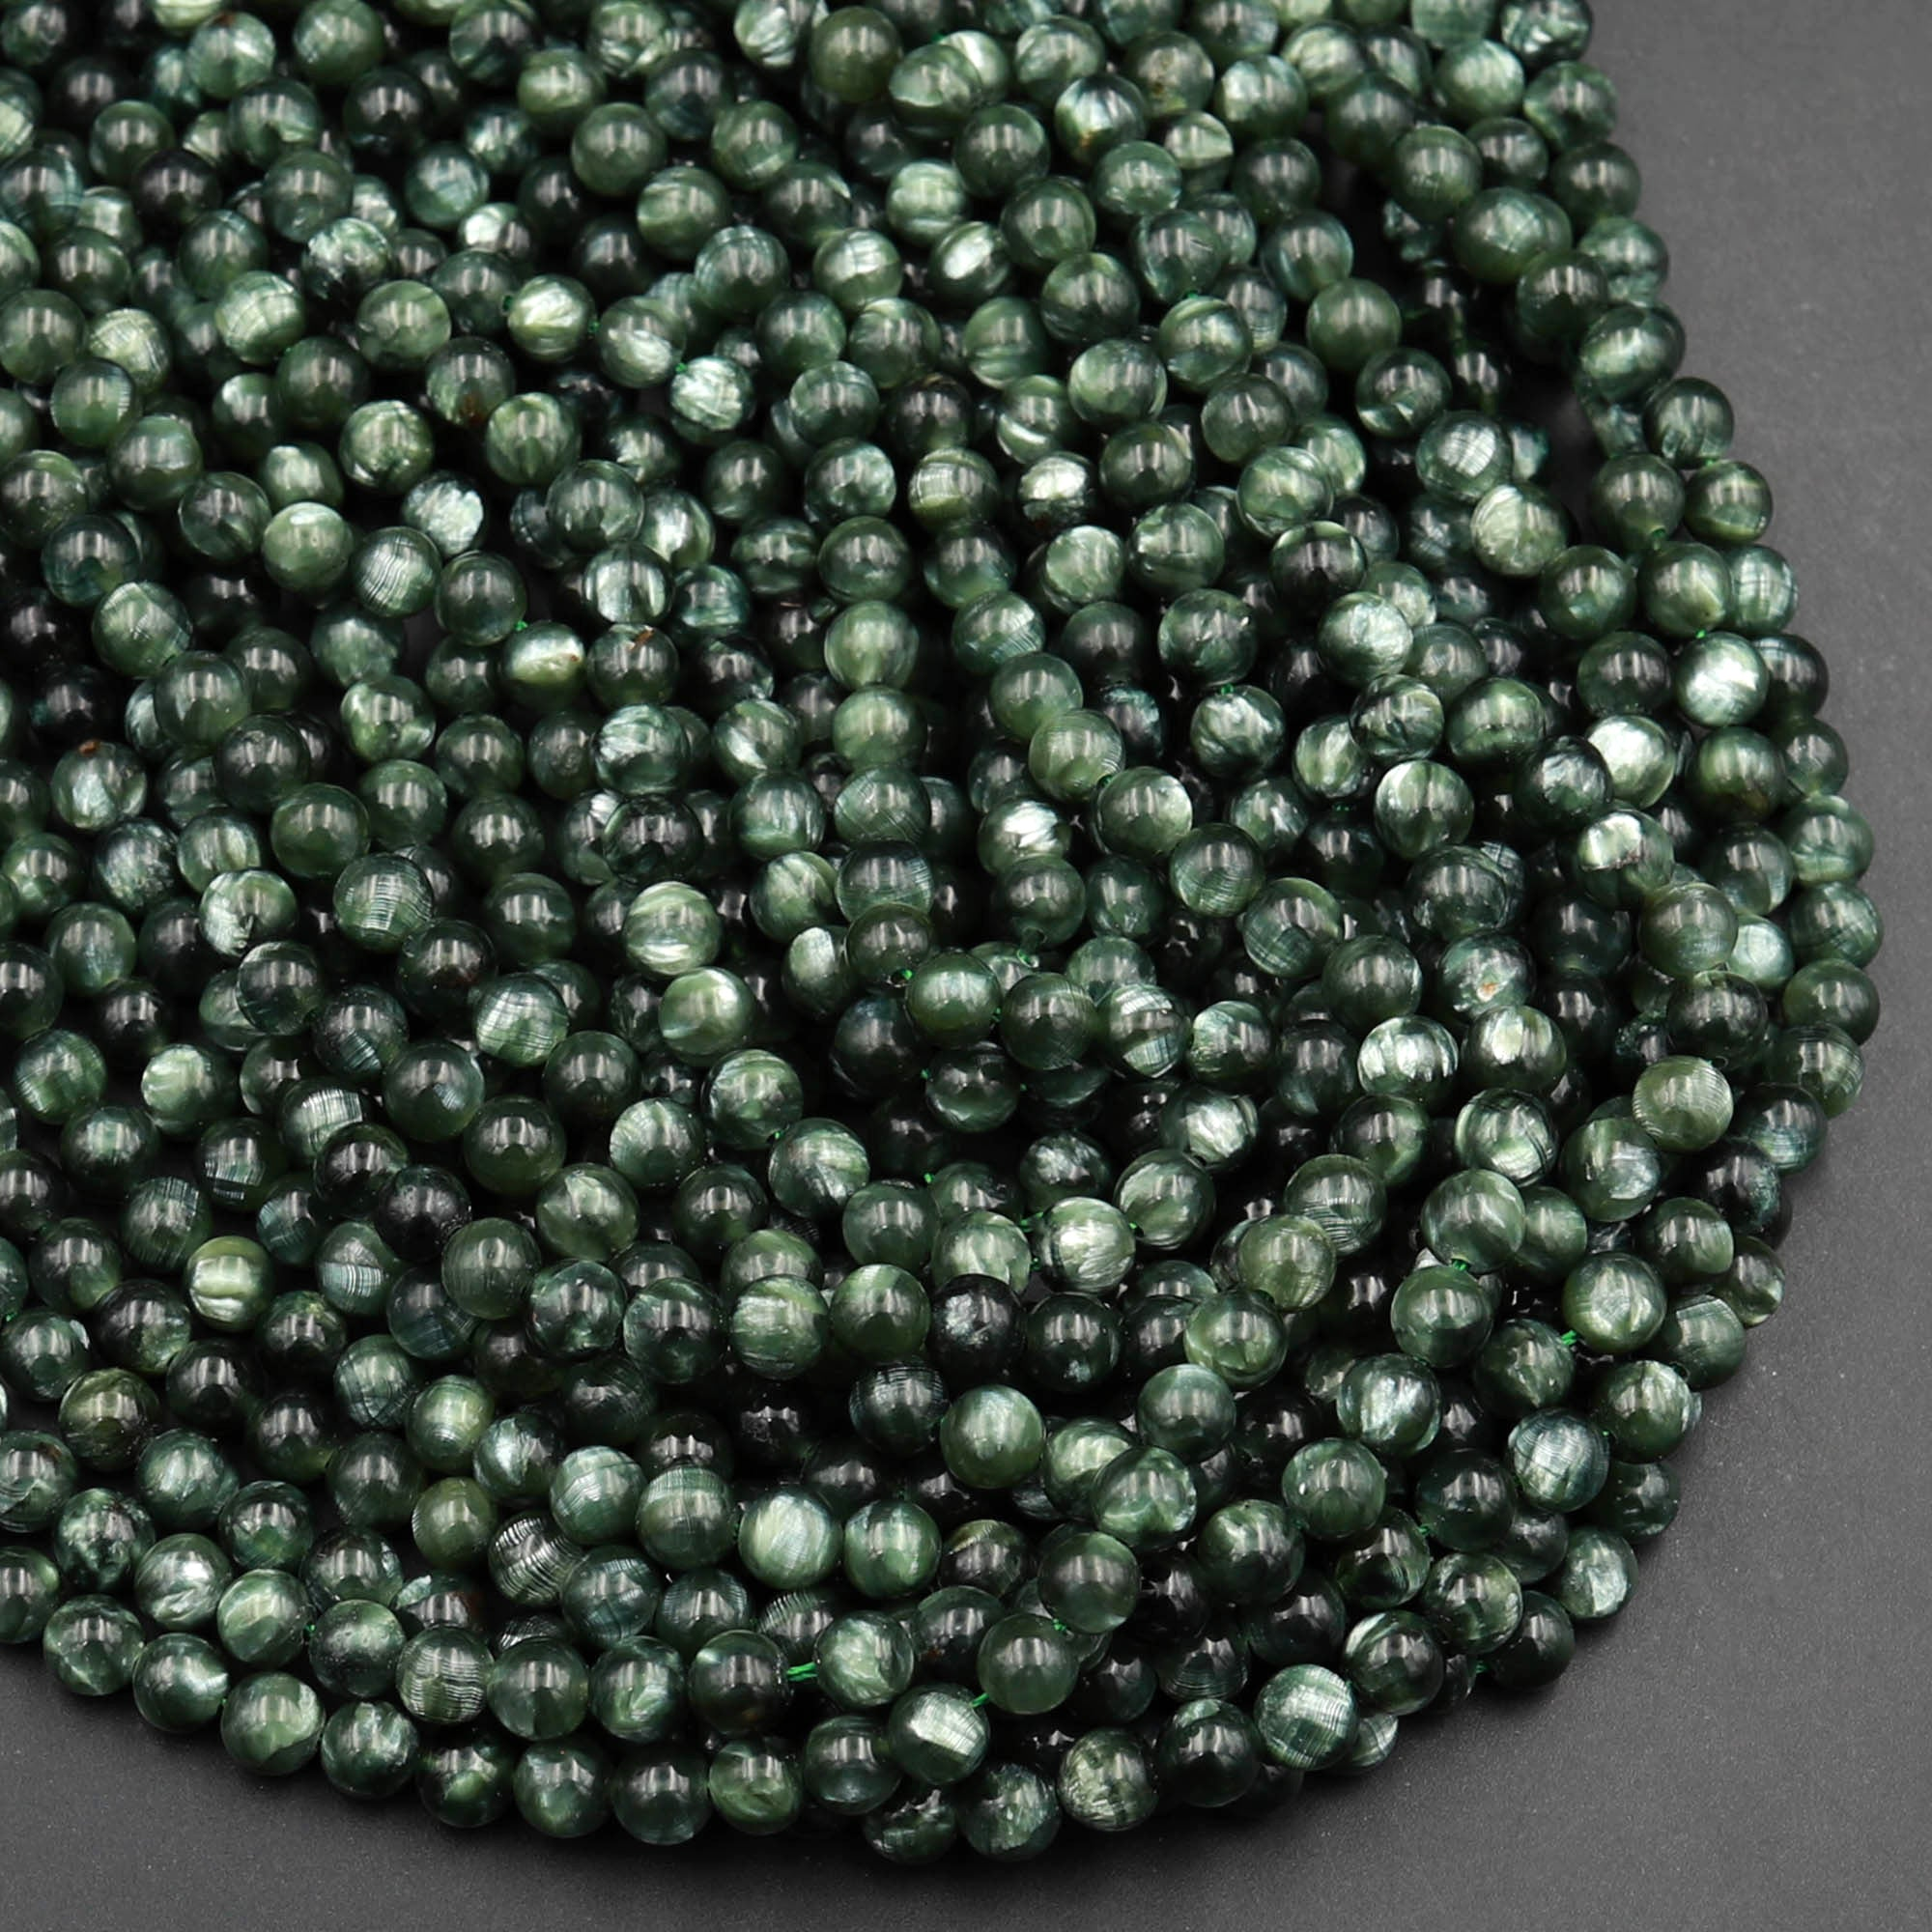 "AAA Russian Seraphinite Smooth Round Beads 3mm 4mm 6mm 8mm Real Genuine Green Gemstone 15.5"" Strand"